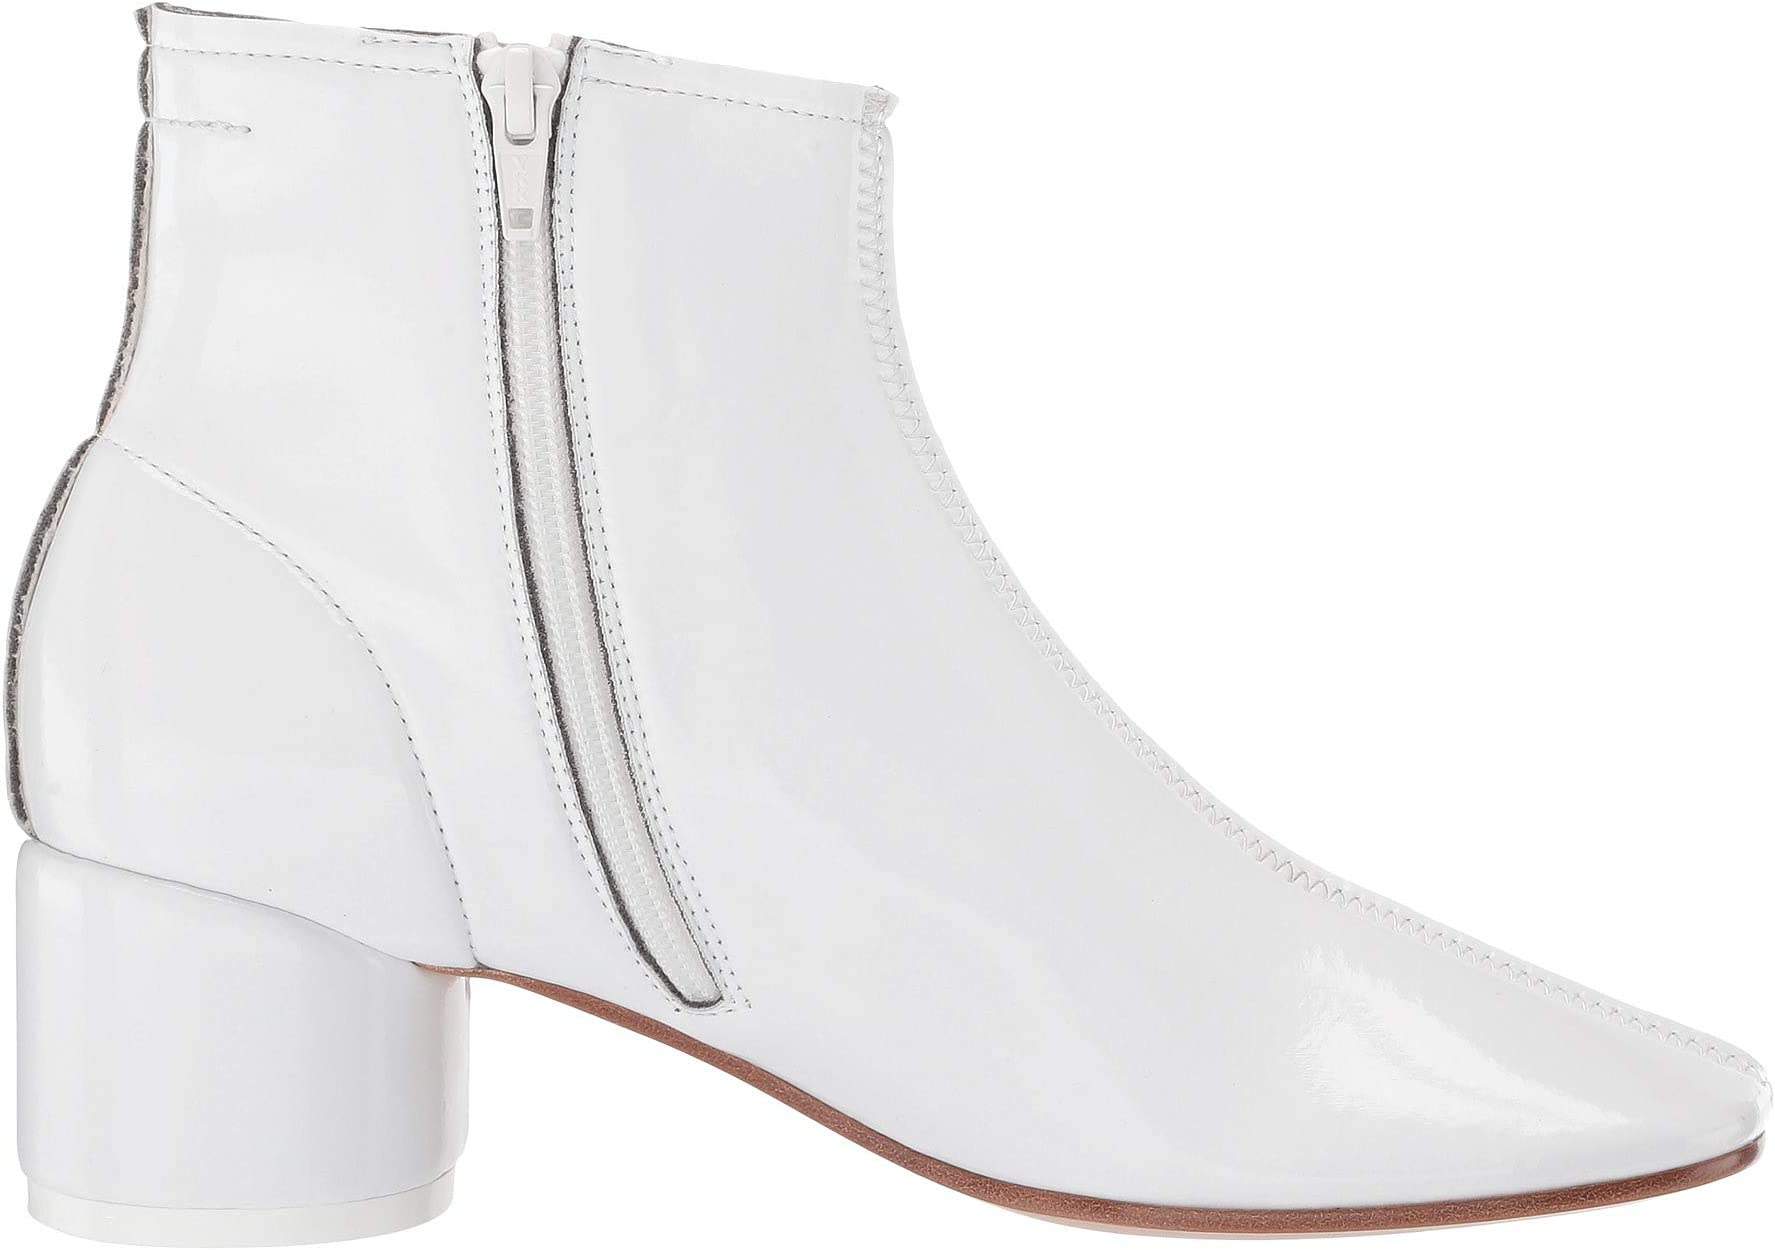 MM6 Maison Margiela Classic Round Low Heel Boot | Women's shoes | 2020 Newest